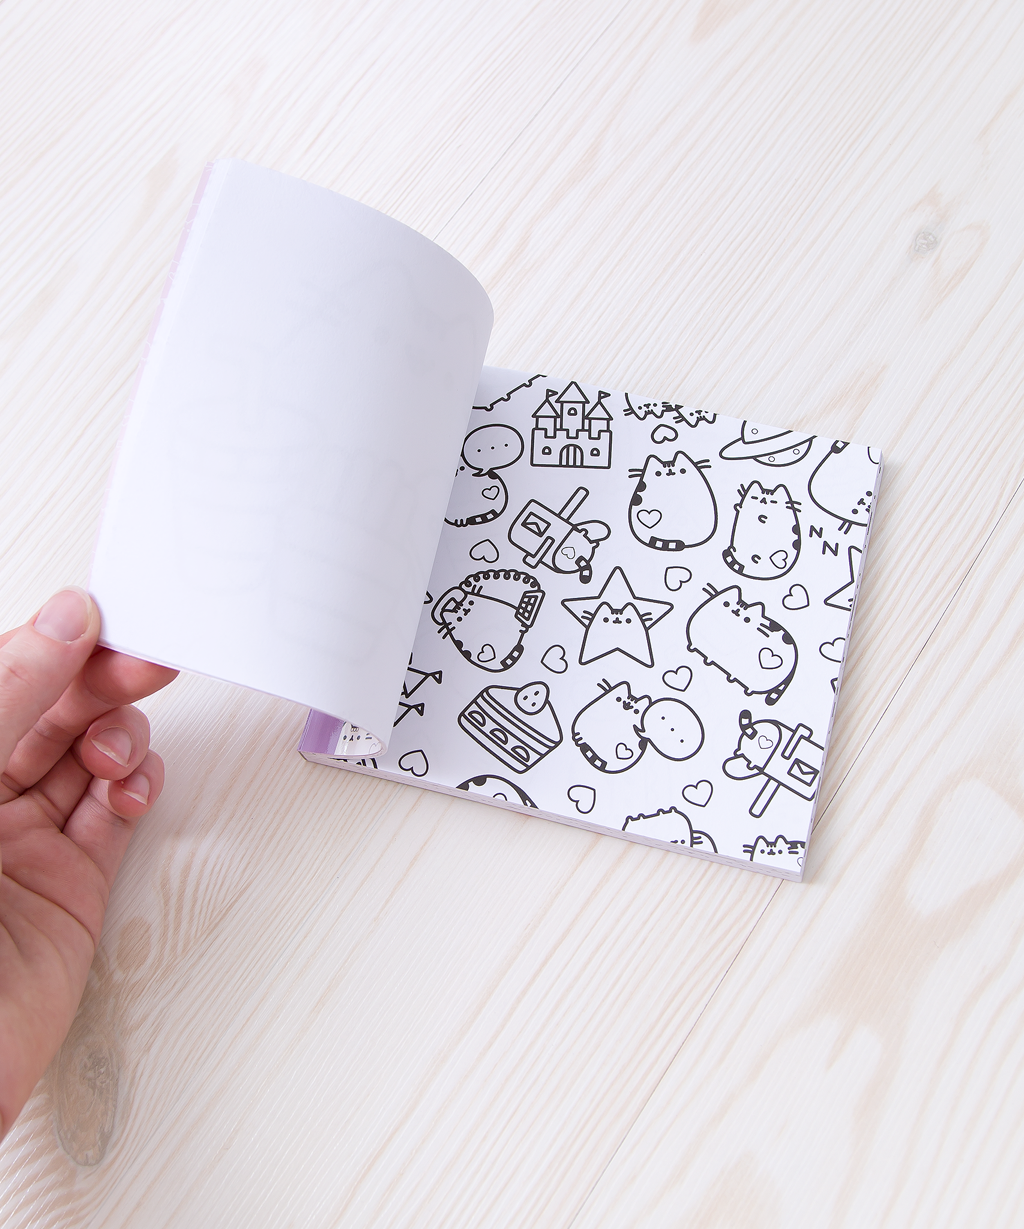 Mini Pusheen the Cat Coloring Book – Hey Chickadee